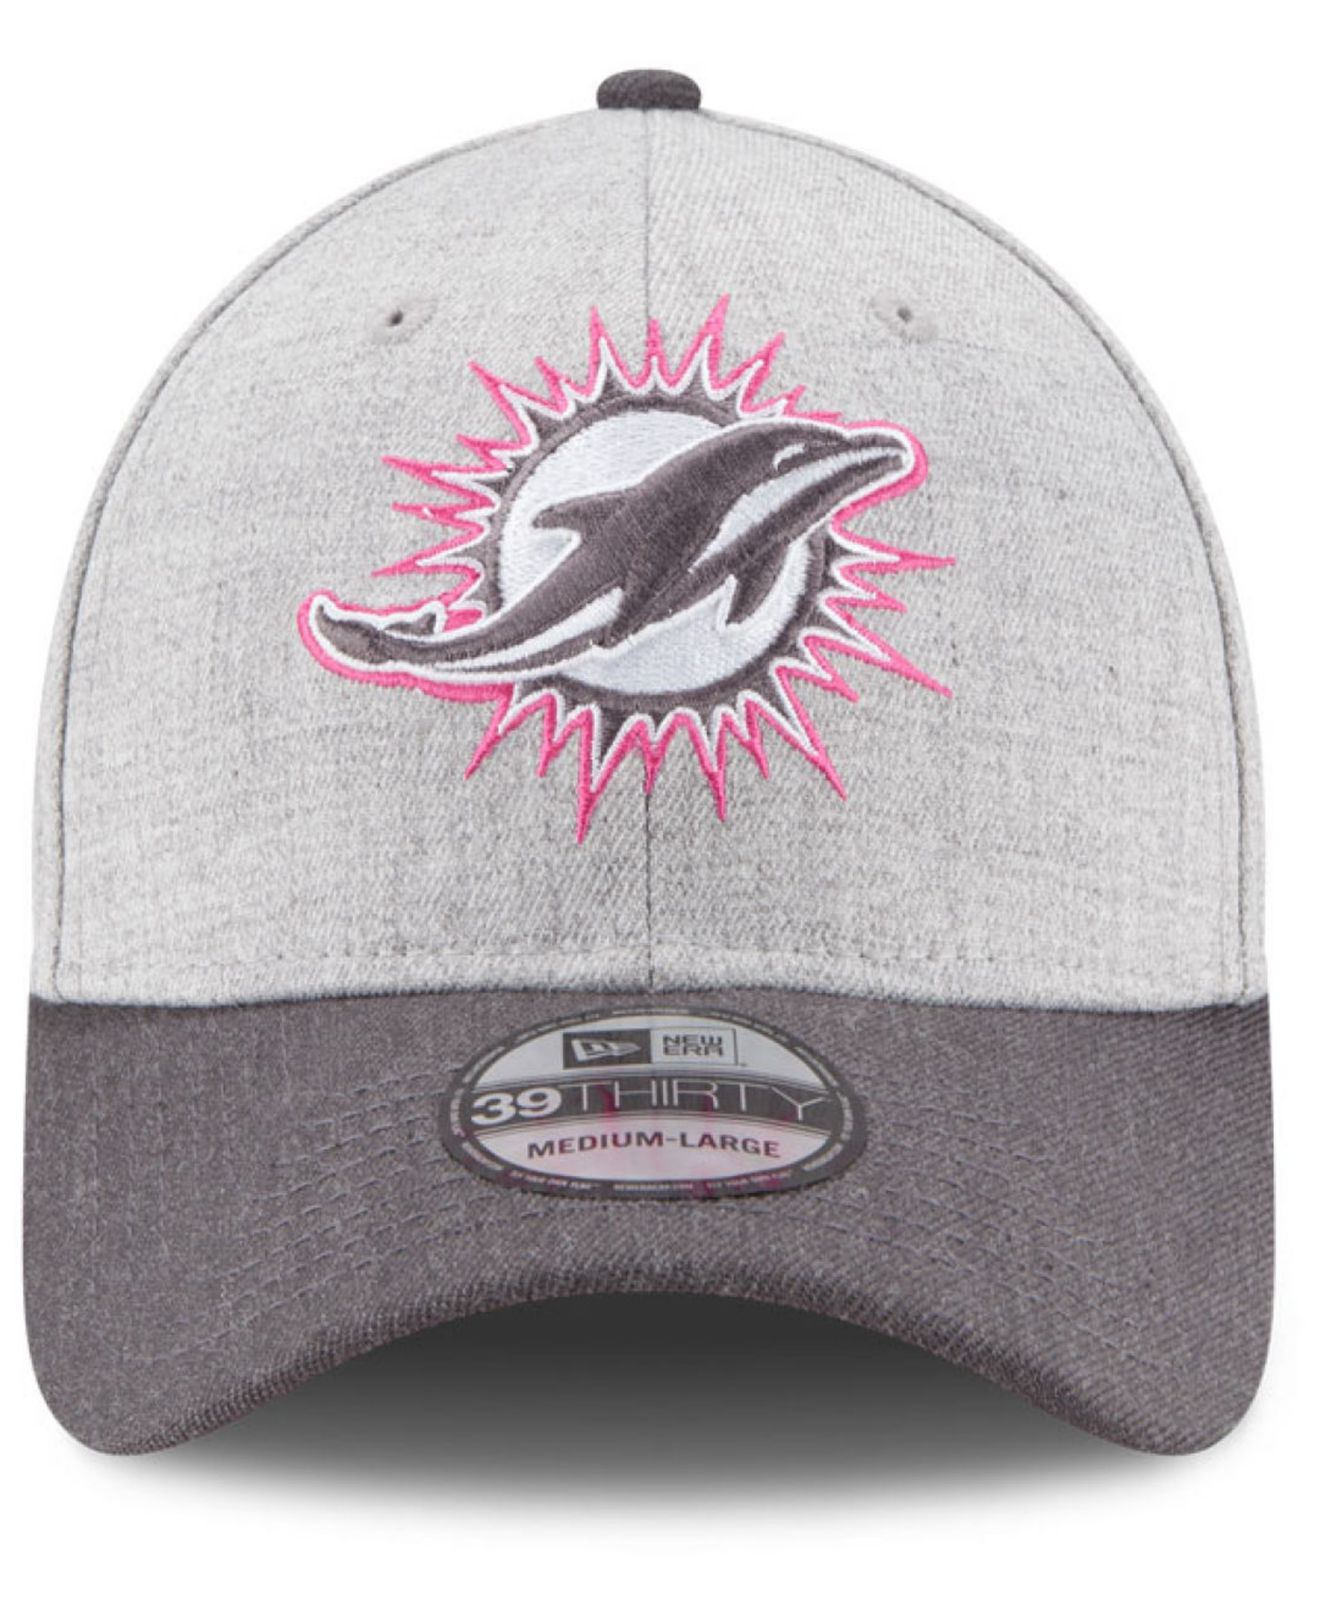 e0a6d414e ... hot lyst ktz miami dolphins breast cancer awareness 39thirty cap in  gray 21a3c 92153